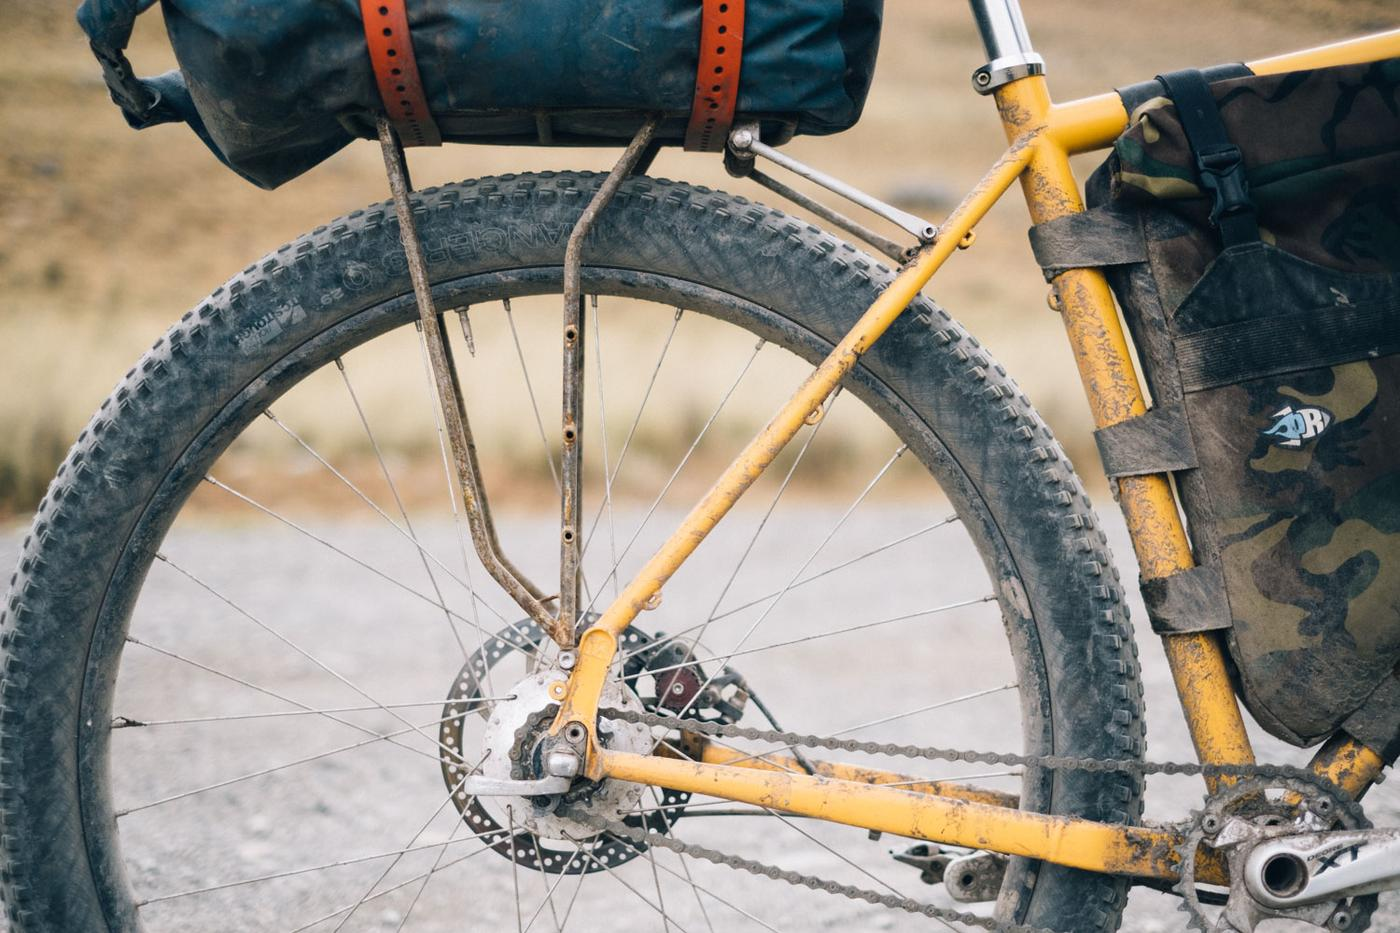 Tumbleweed Bicycle Company To Take Over Production And Sales Of RatKing T Rack